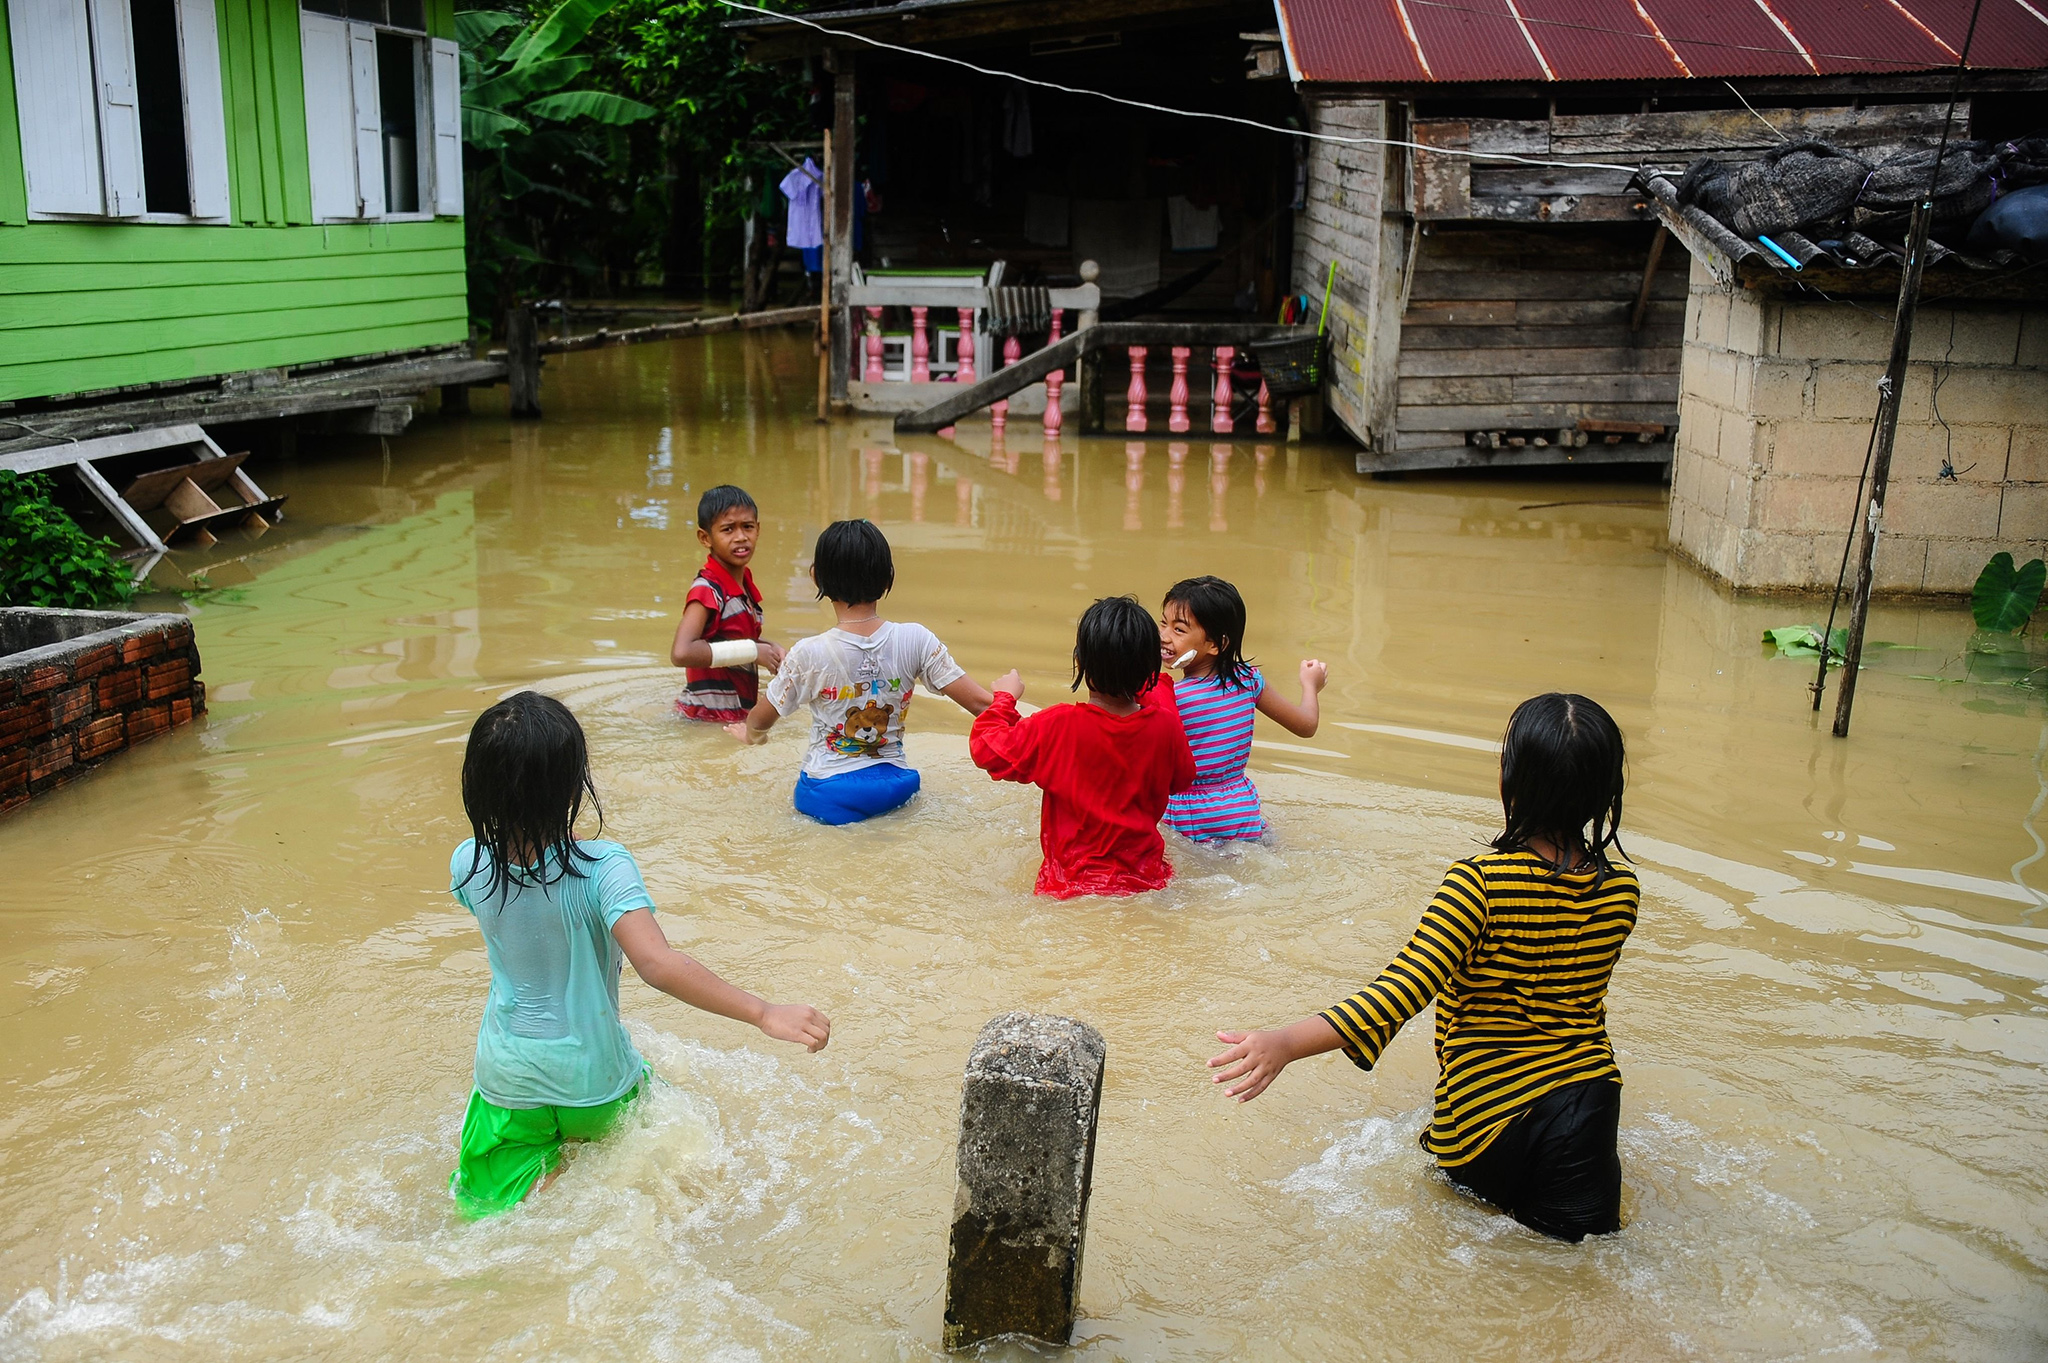 Children play near houses inundated by floodwaters after heavy rains in the Rangae district of the southern province of Narathiwat on December 21, 2016. / AFP PHOTO / MADAREE TOHLALAMADAREE TOHLALA/AFP/Getty Images